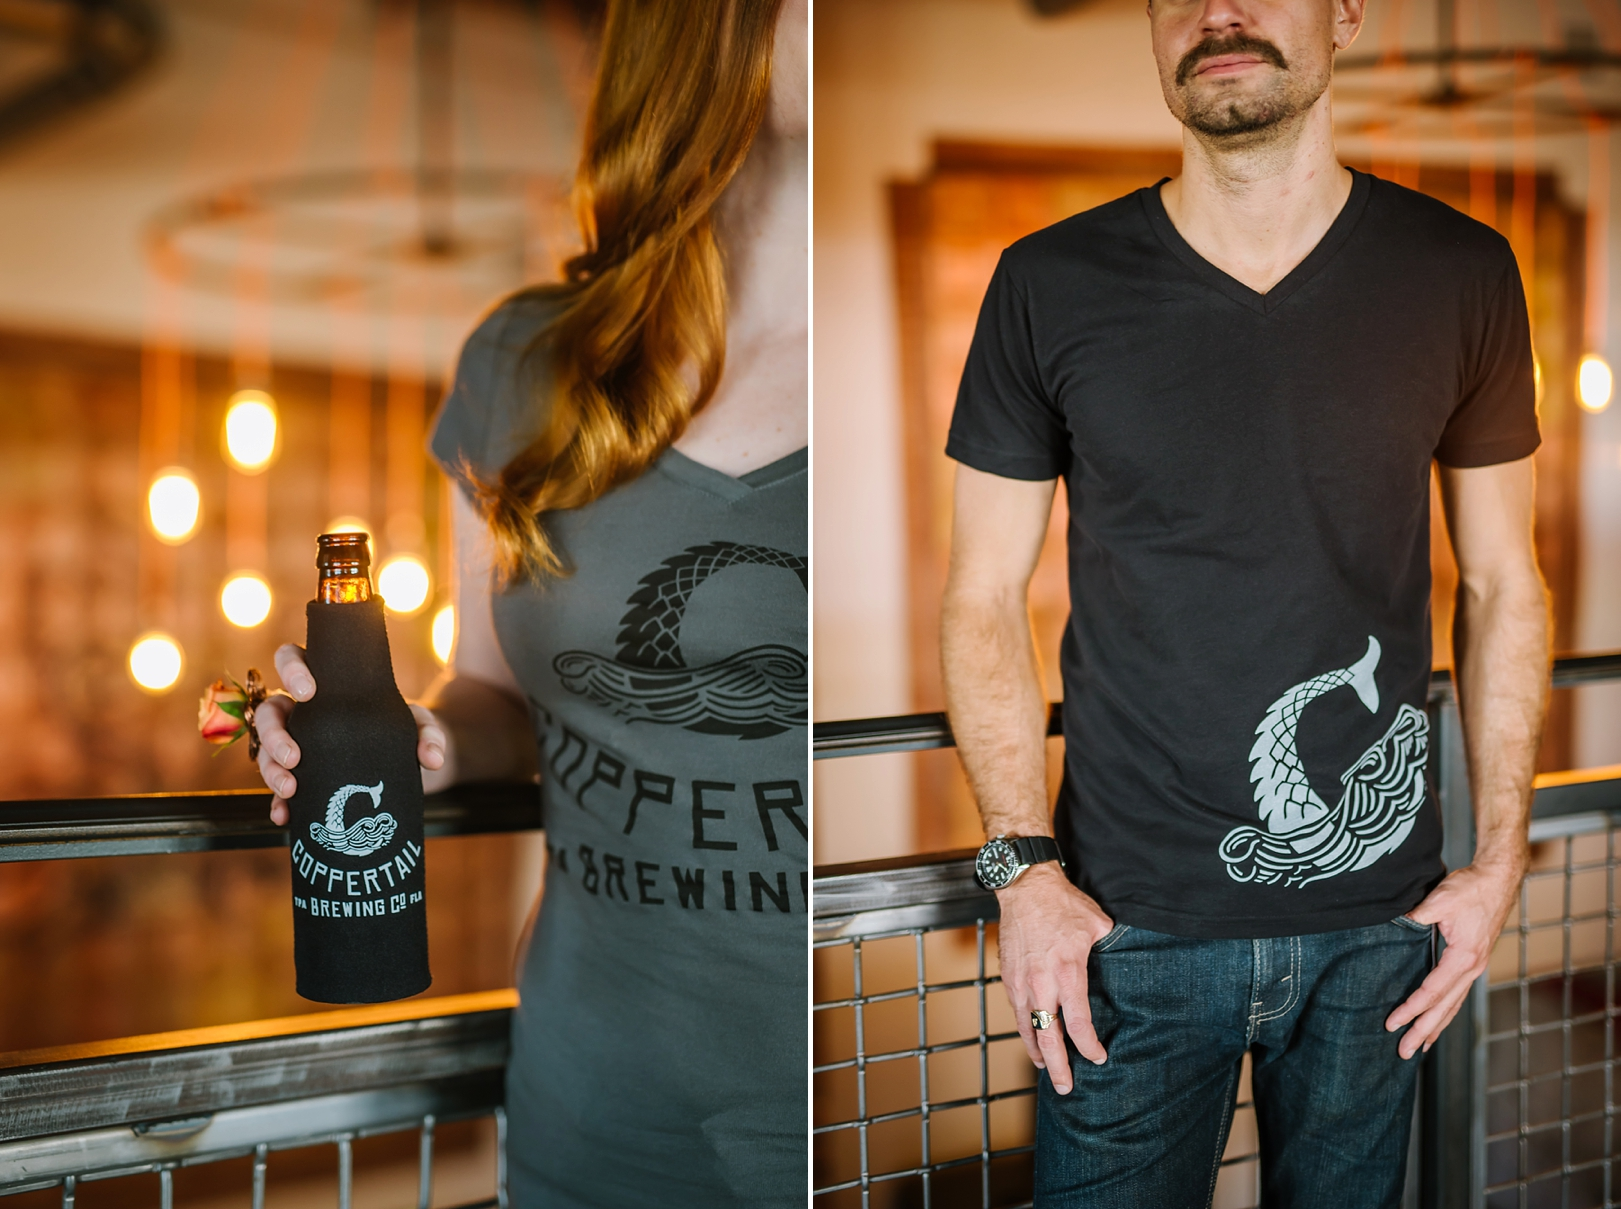 tampa-commercial-photographer-coppertail-brewing-ashlee-hamon_0001.jpg